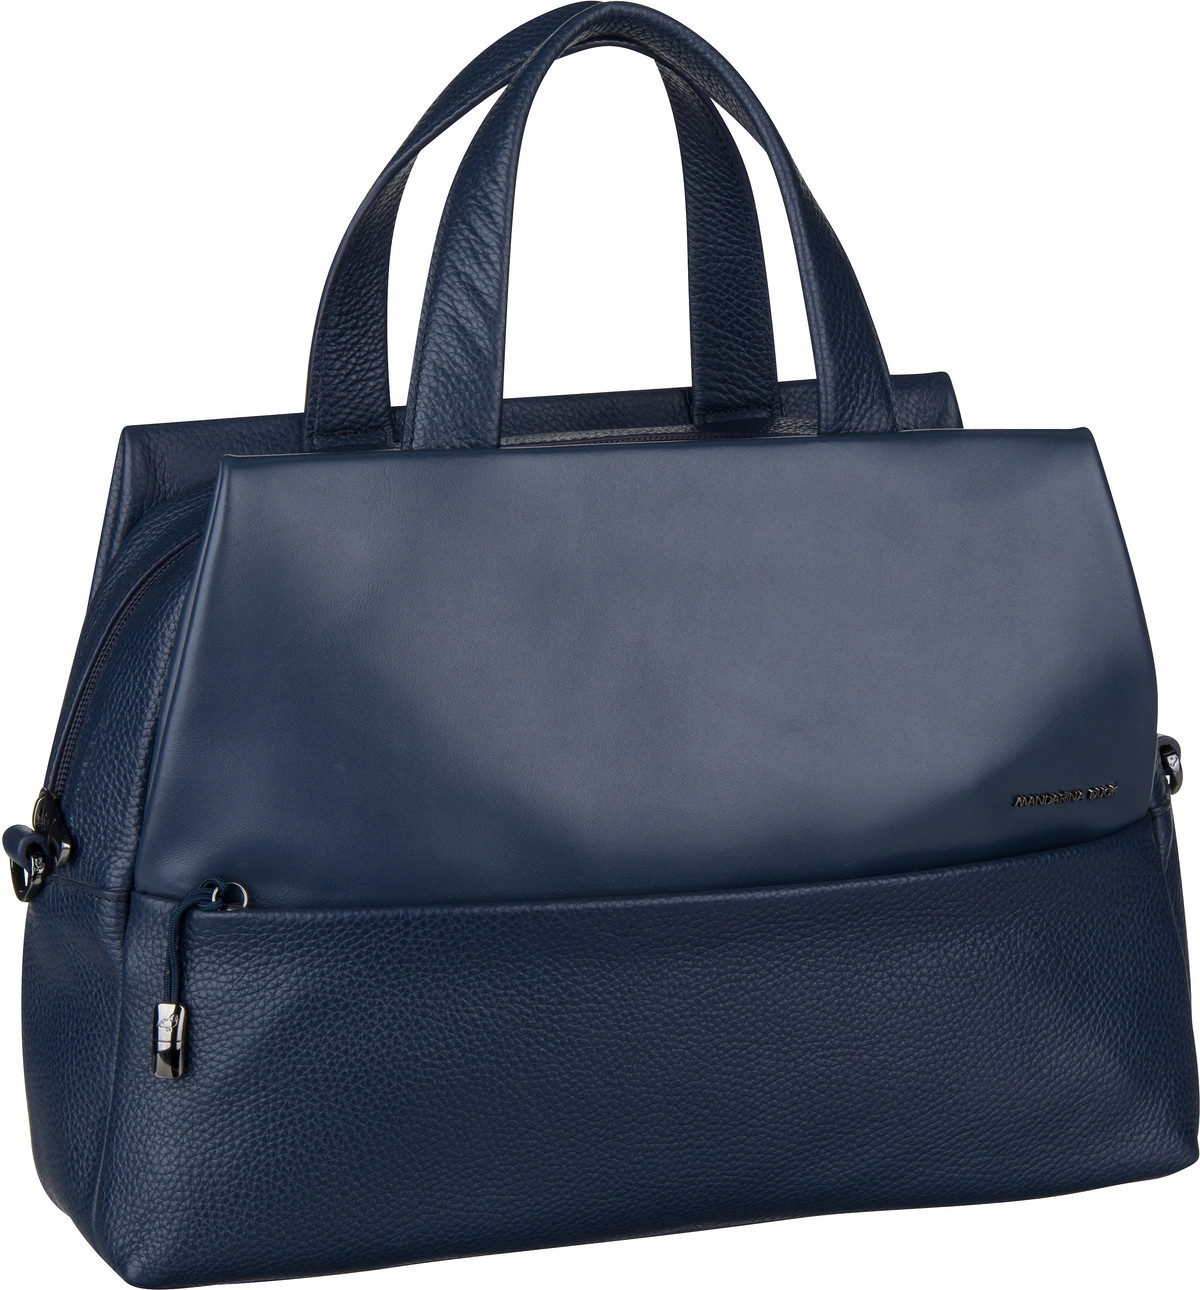 Handtasche Athena Boston Bag UPT01 Dress Blue